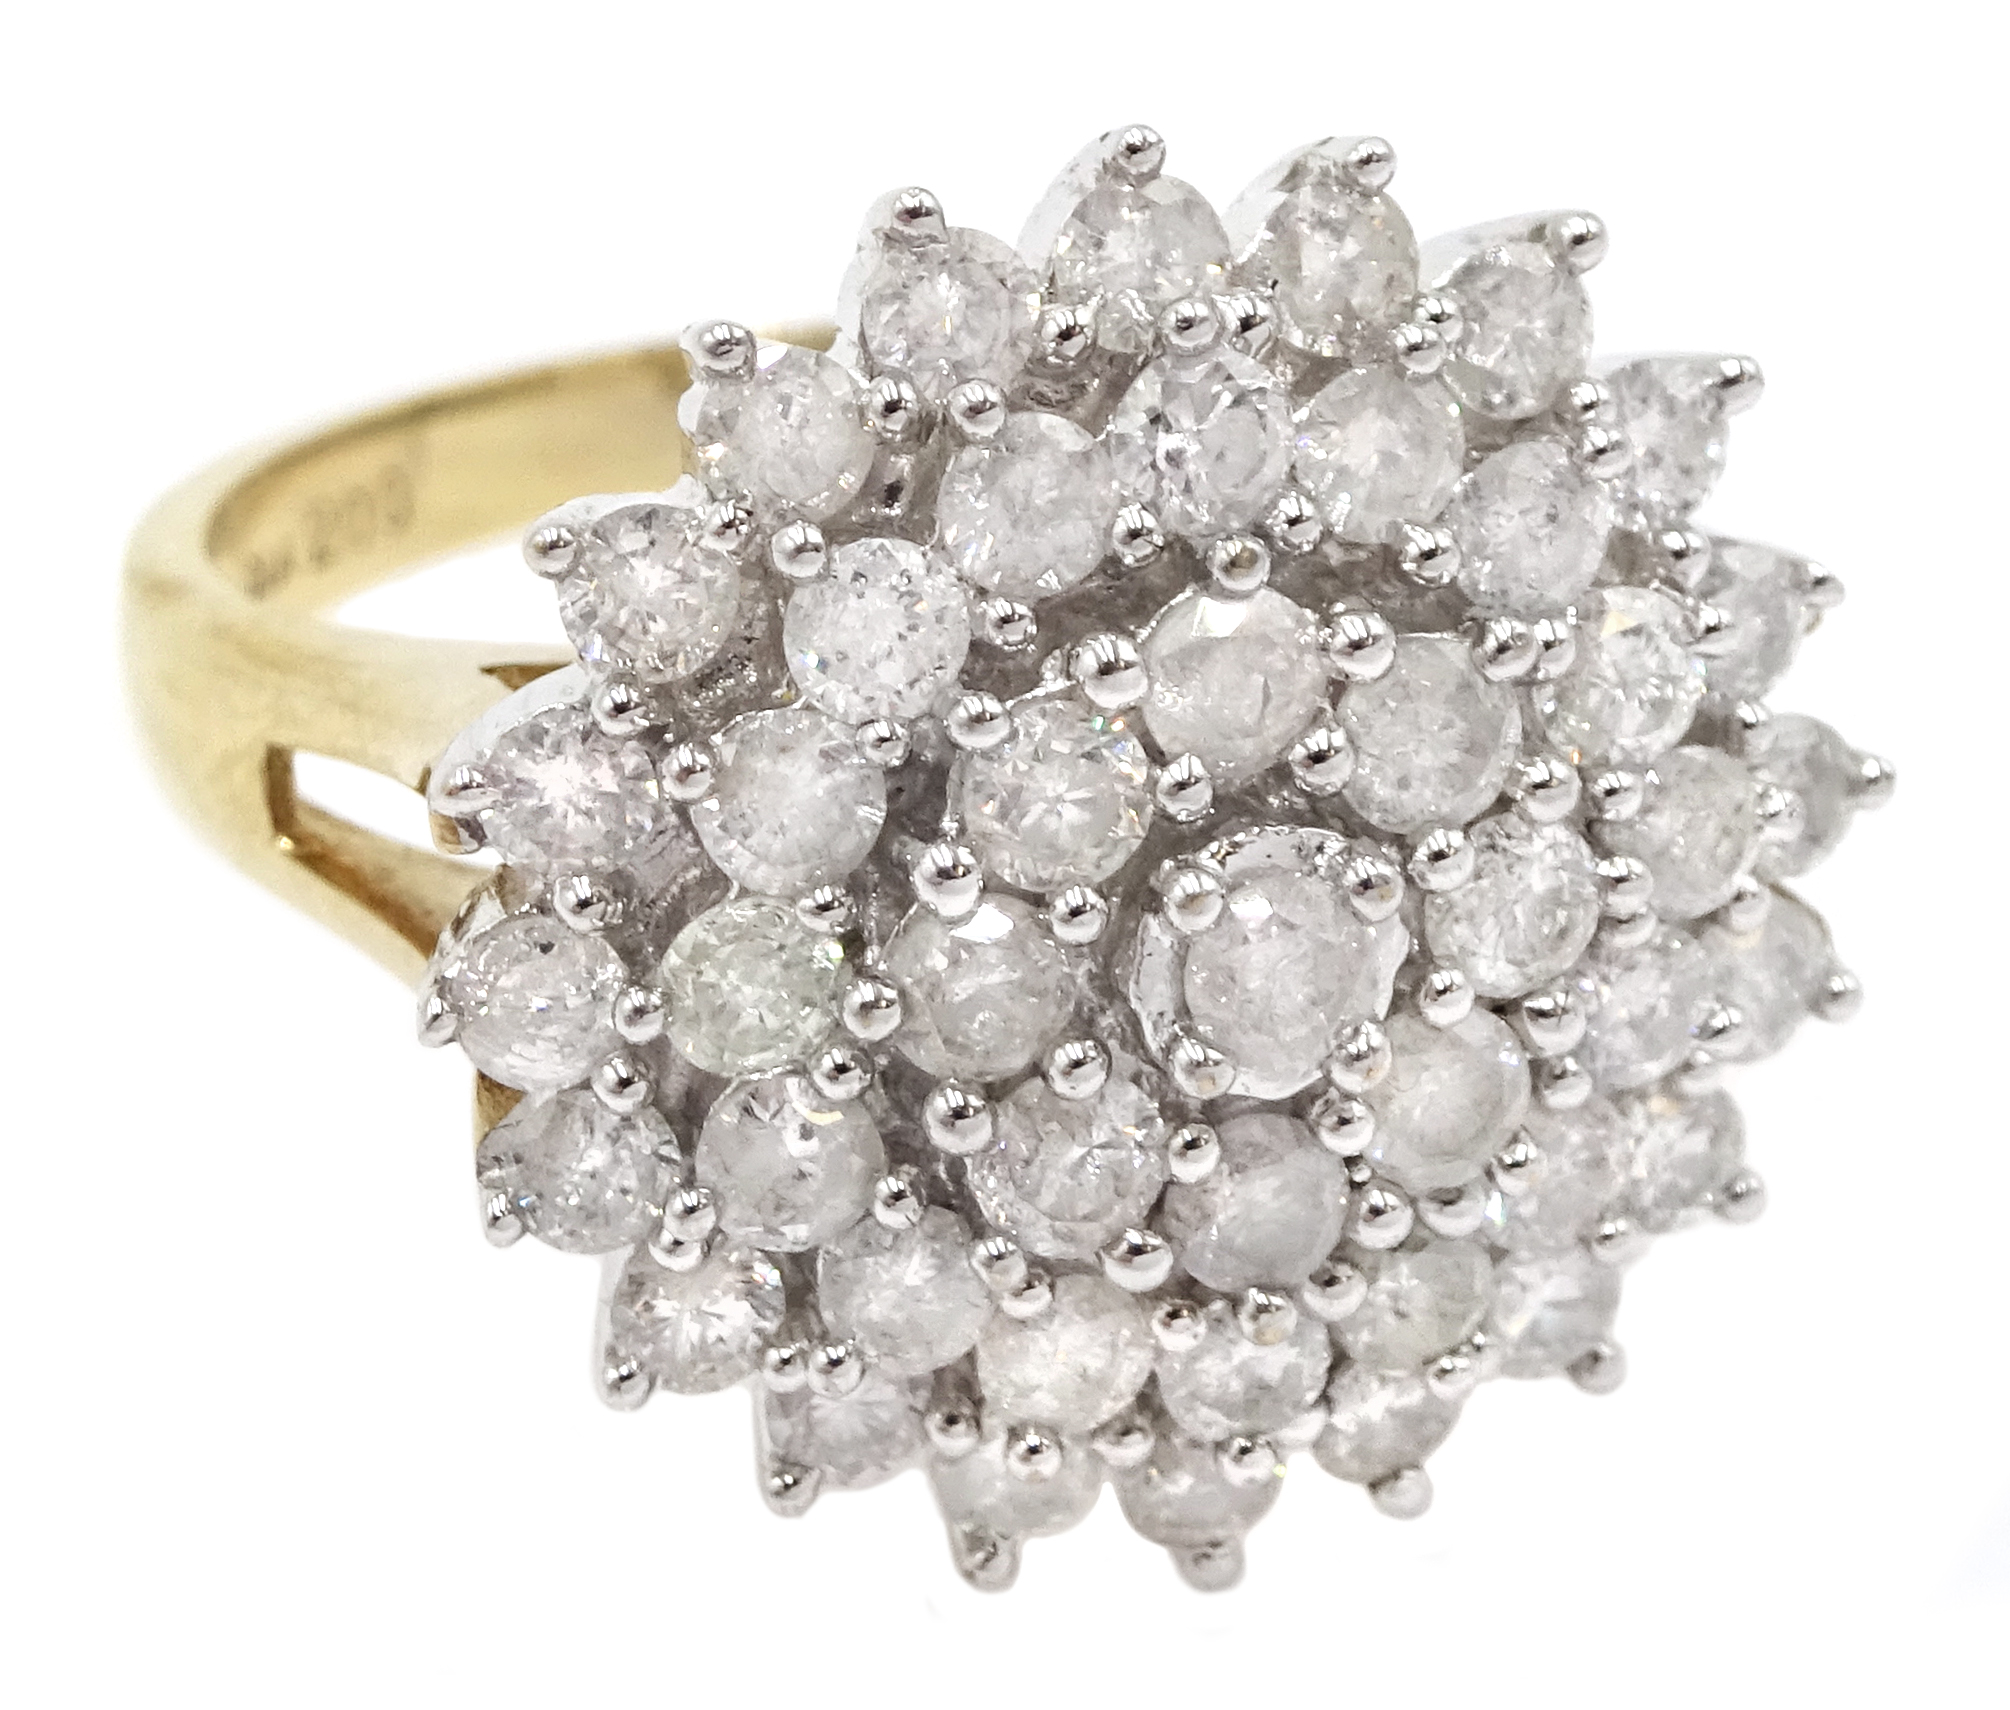 9ct gold cluster ring set with diamonds, diamond total weight approx 2.00 carat, free UK mainland - Image 3 of 6